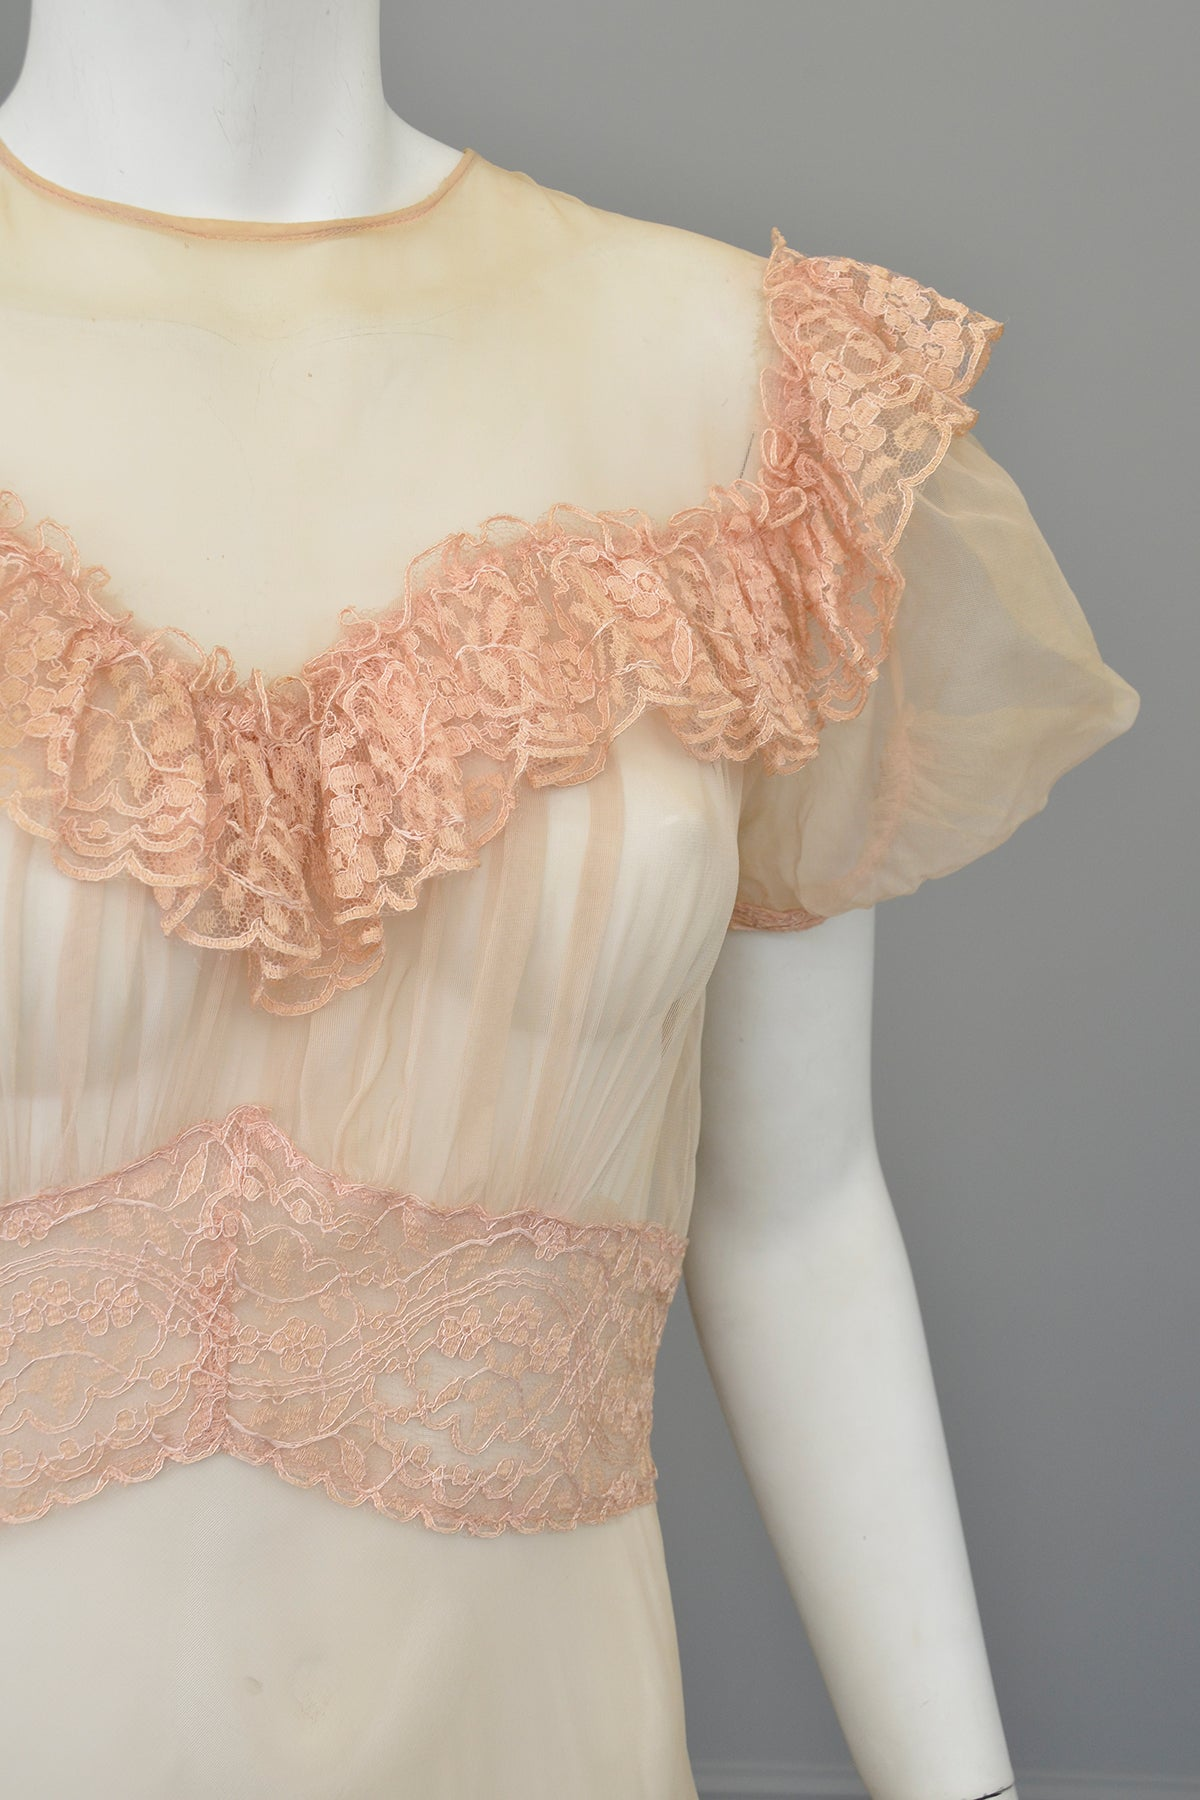 1930s Shell Pink Lace Ruffles Puff Sleeves Gown | Mesh Netting | Restoration or Study